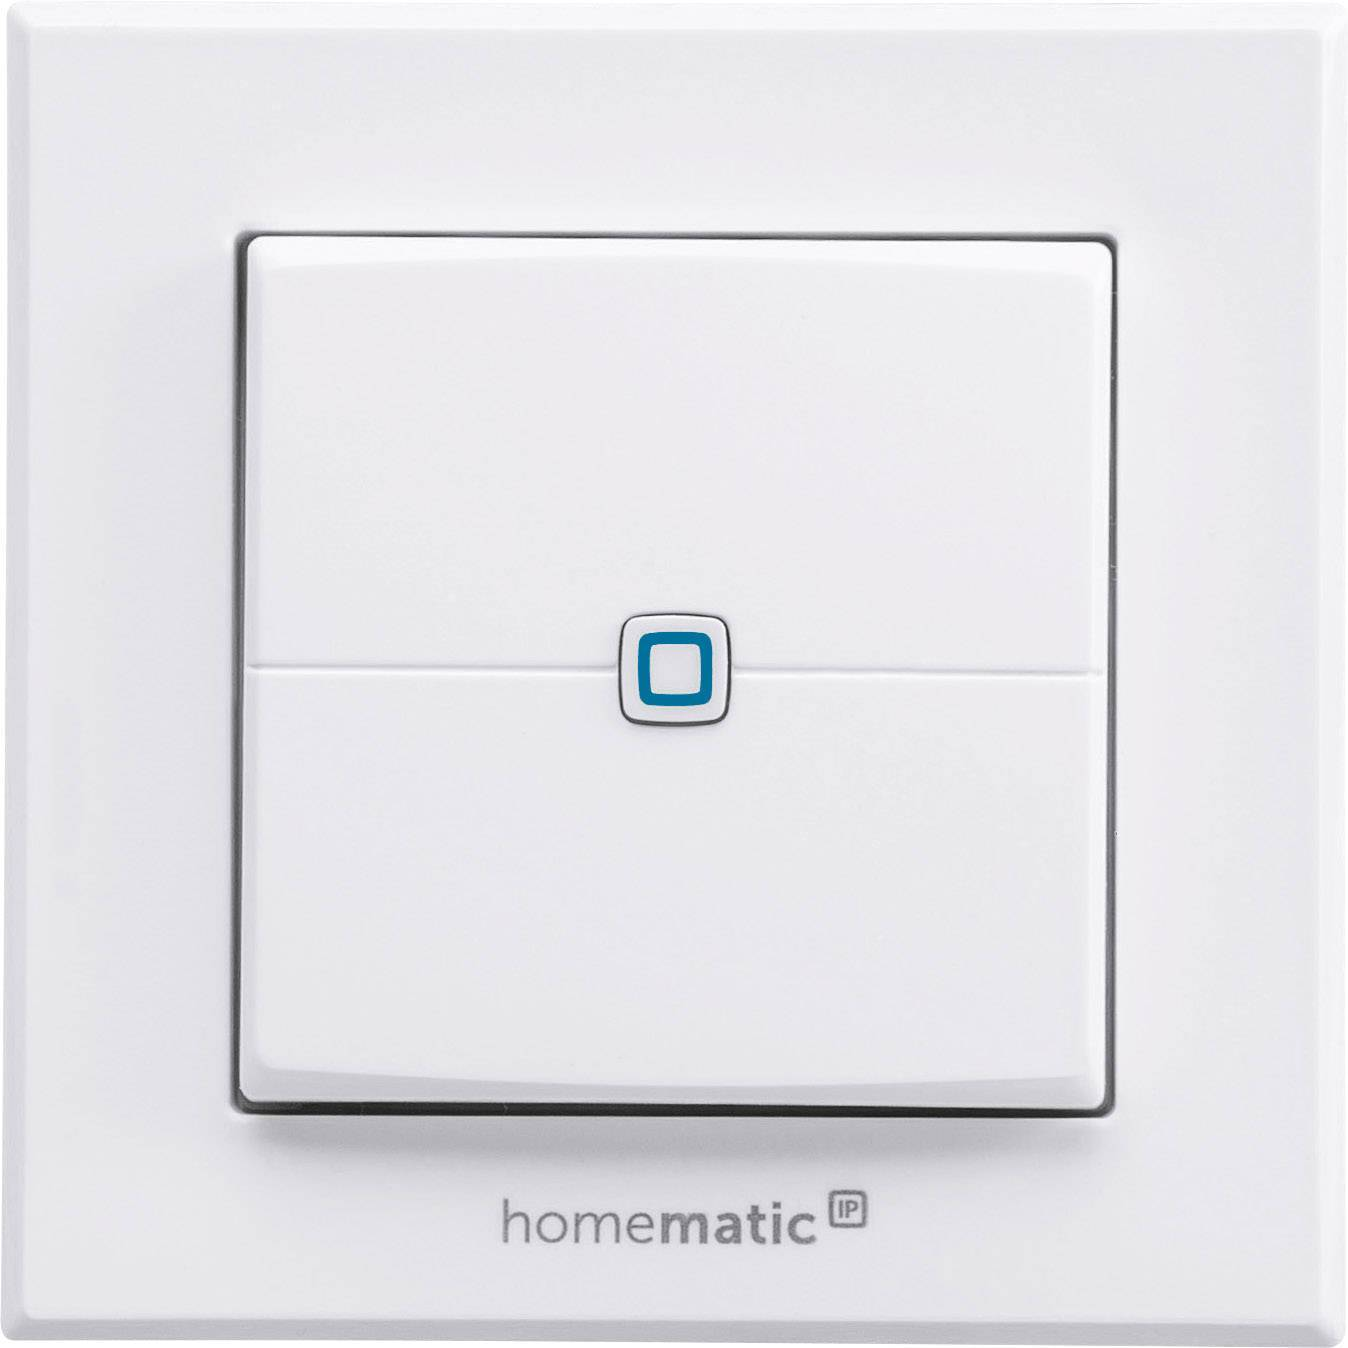 Homematic Télécommande murale sans fil type interrupteur - Homematic Ip